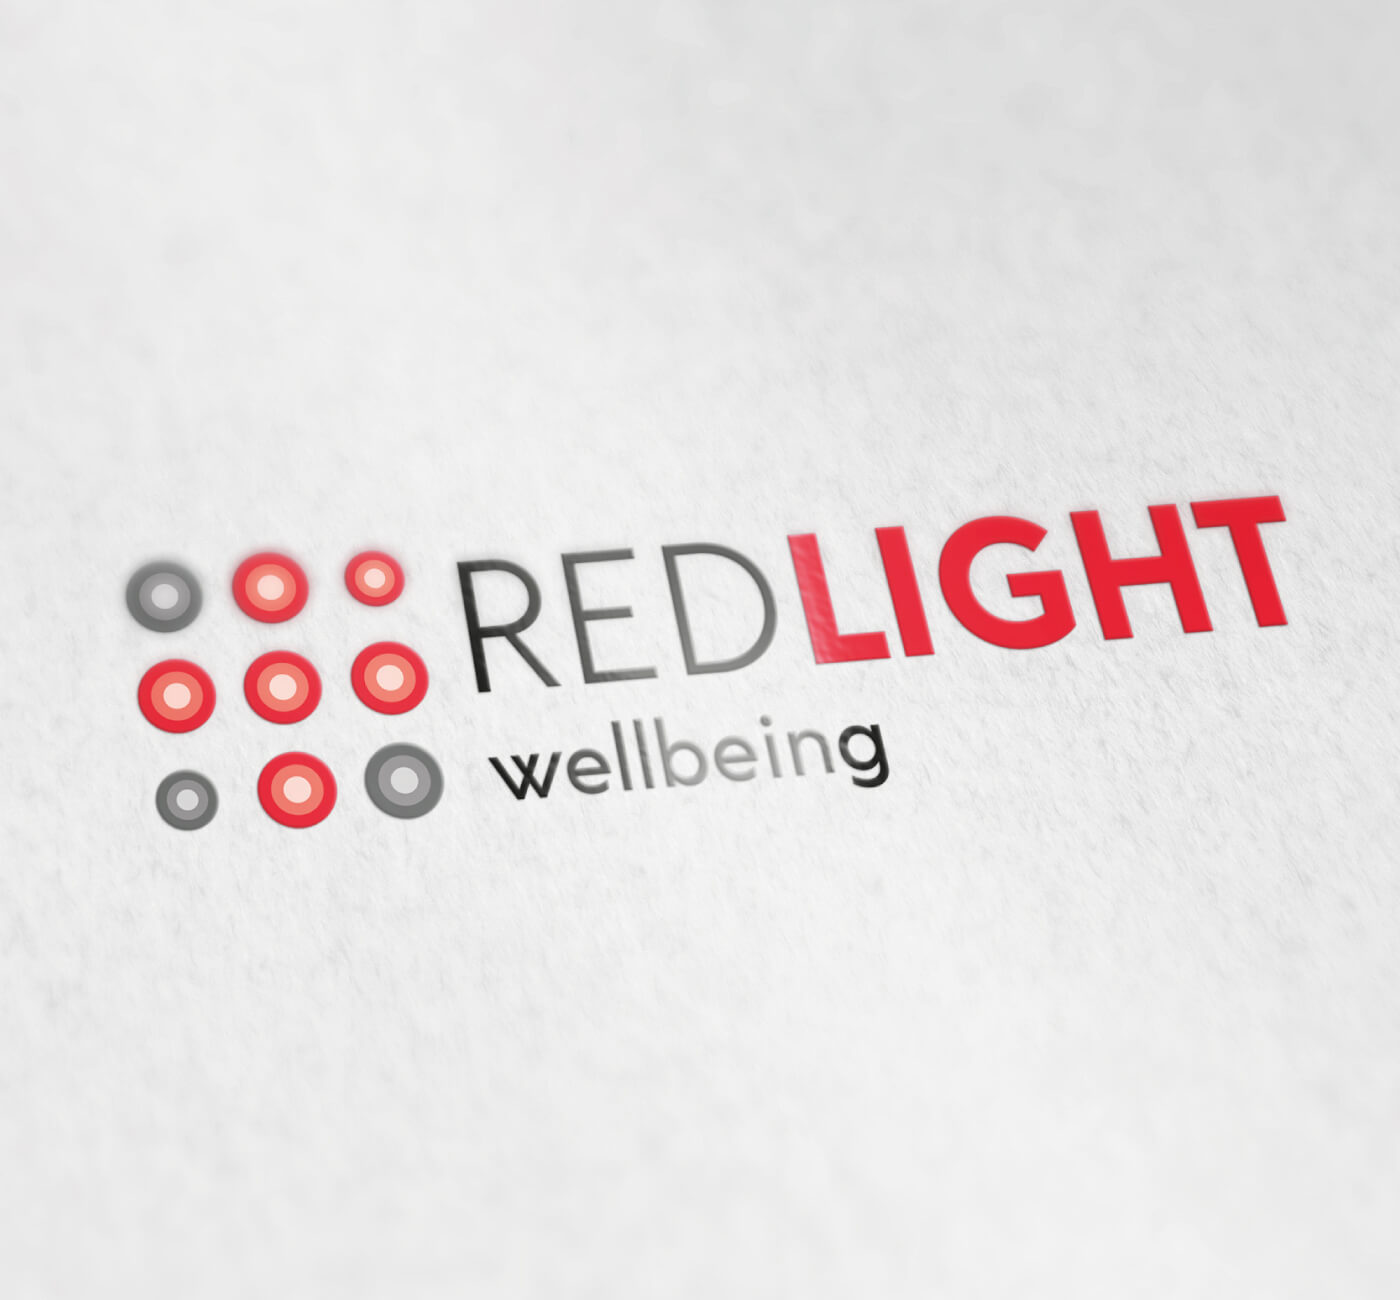 red light wellbeing logo